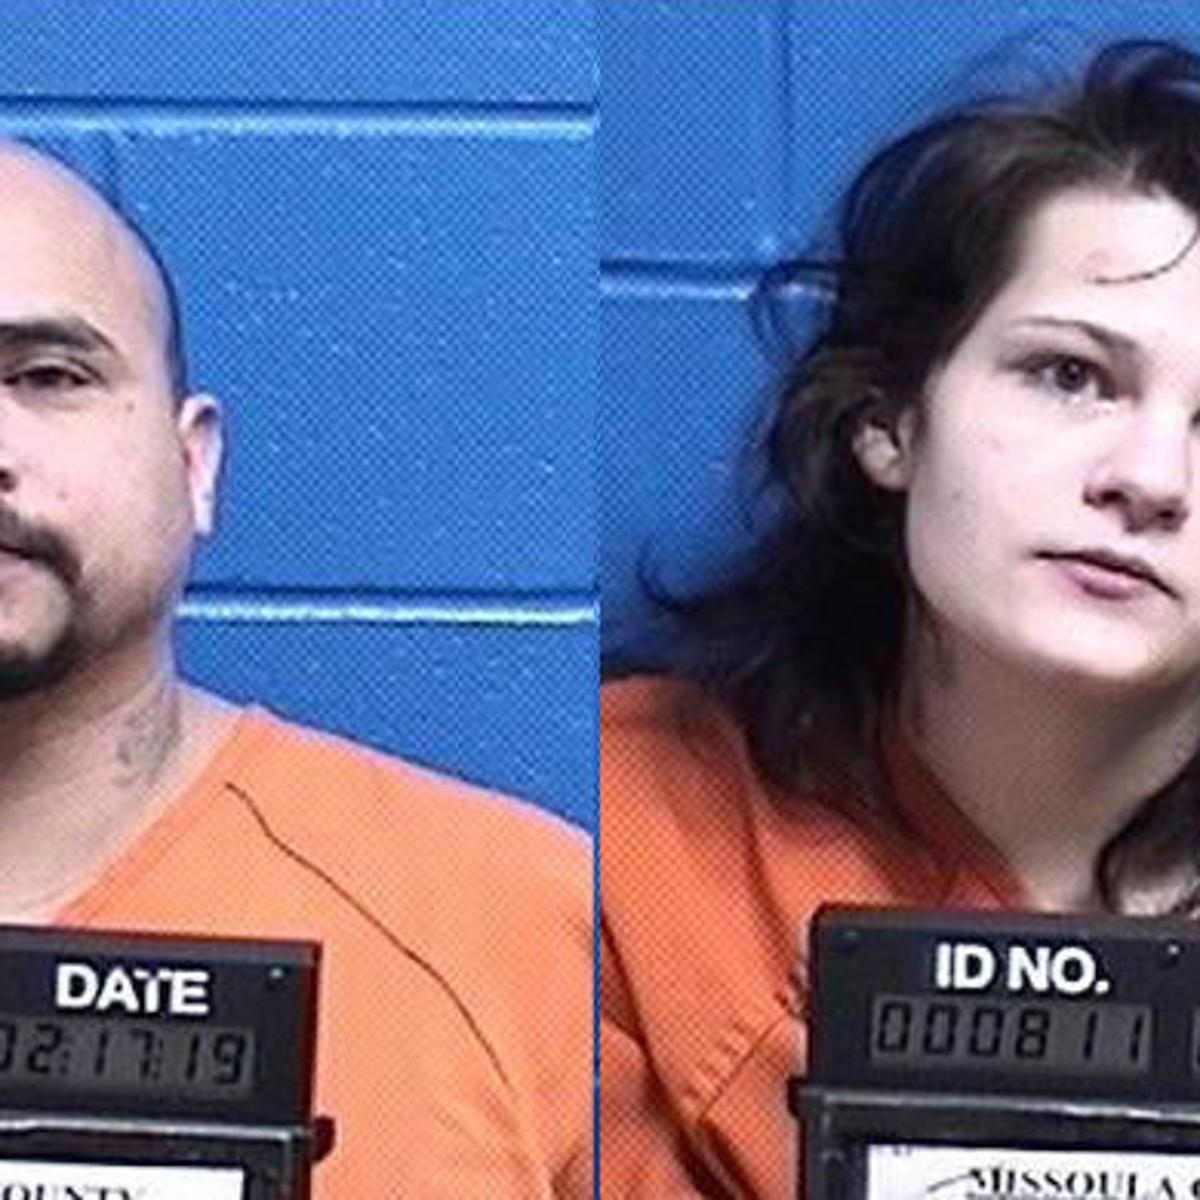 Federal authorities intercept 1 5 pounds of meth at Missoula